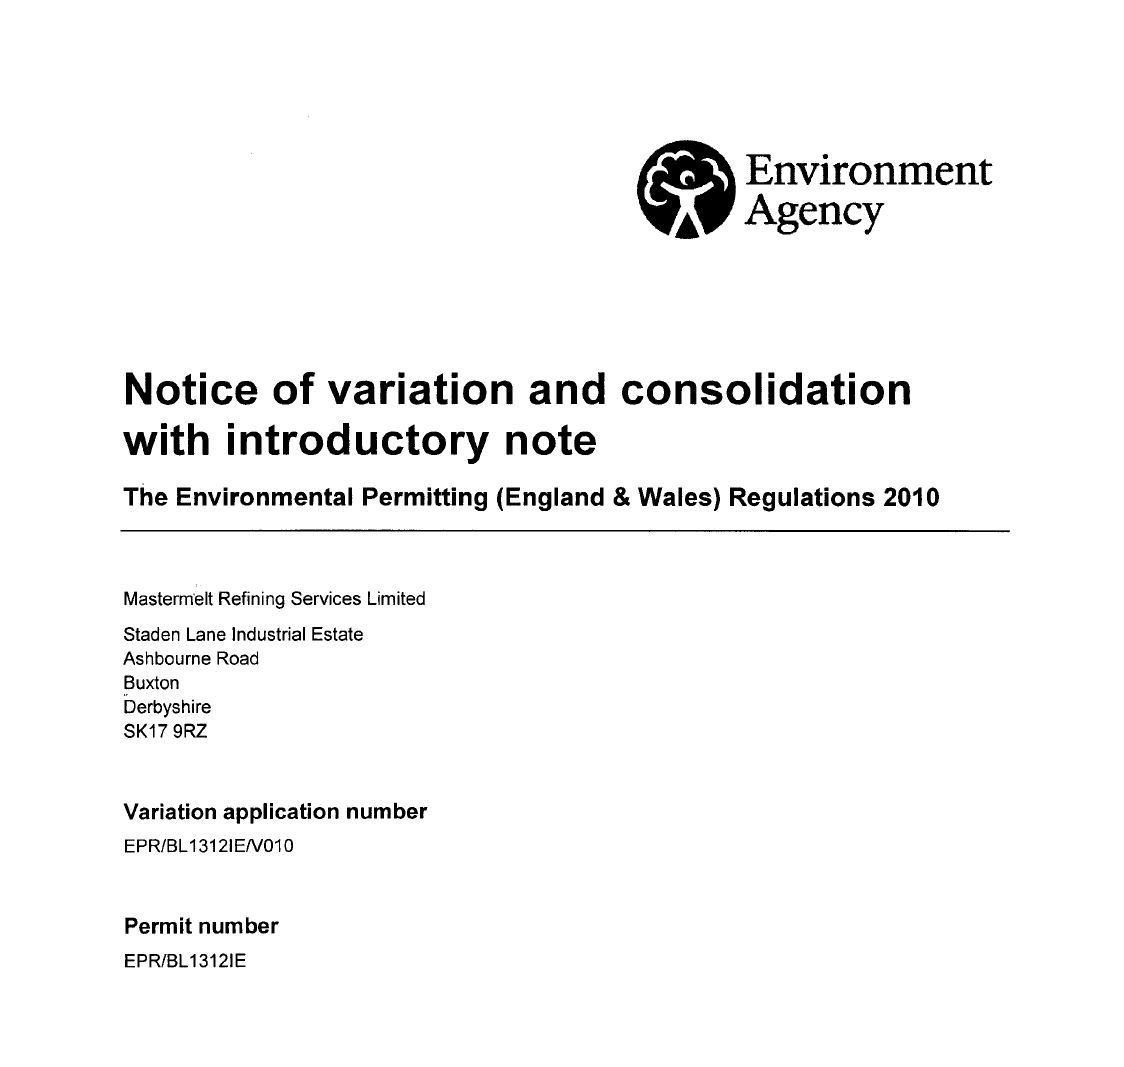 Refining – Issue of Variation Notice EPR/BL1312IE/V010